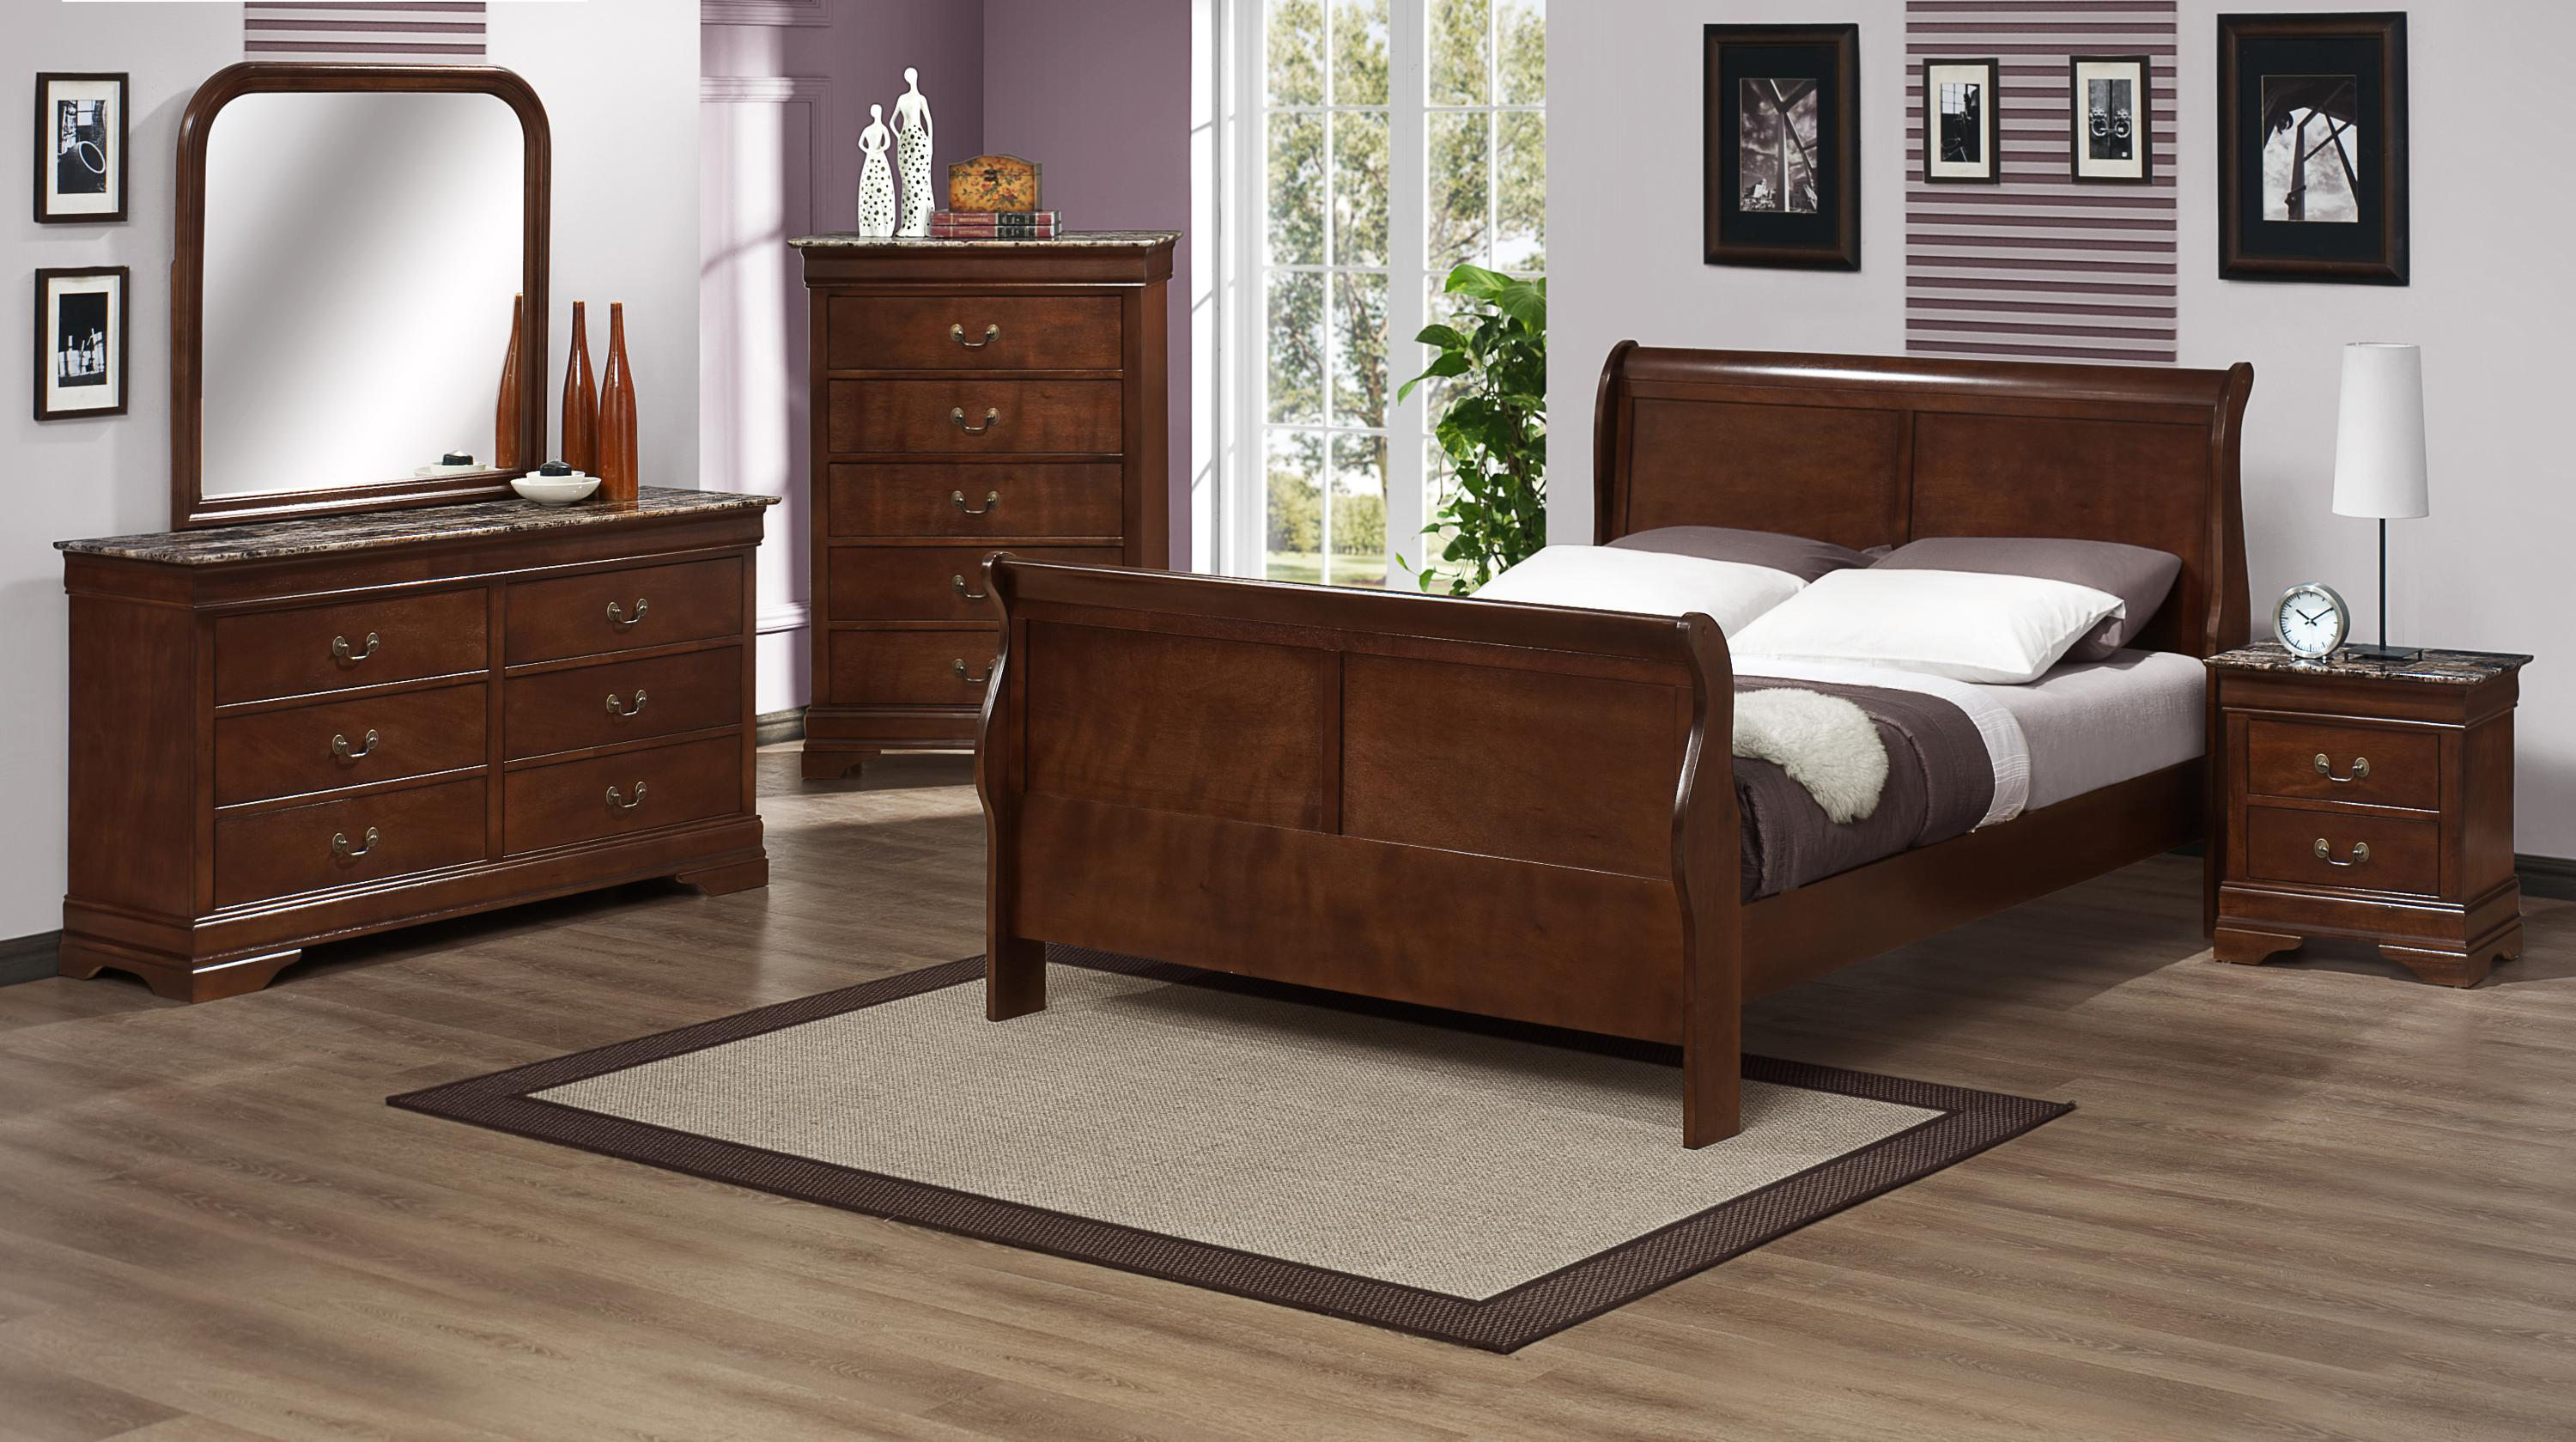 Marseille Bedroom Furniture Austin Group Marseille 6 Drawer Dresser Wayside Furniture Dressers